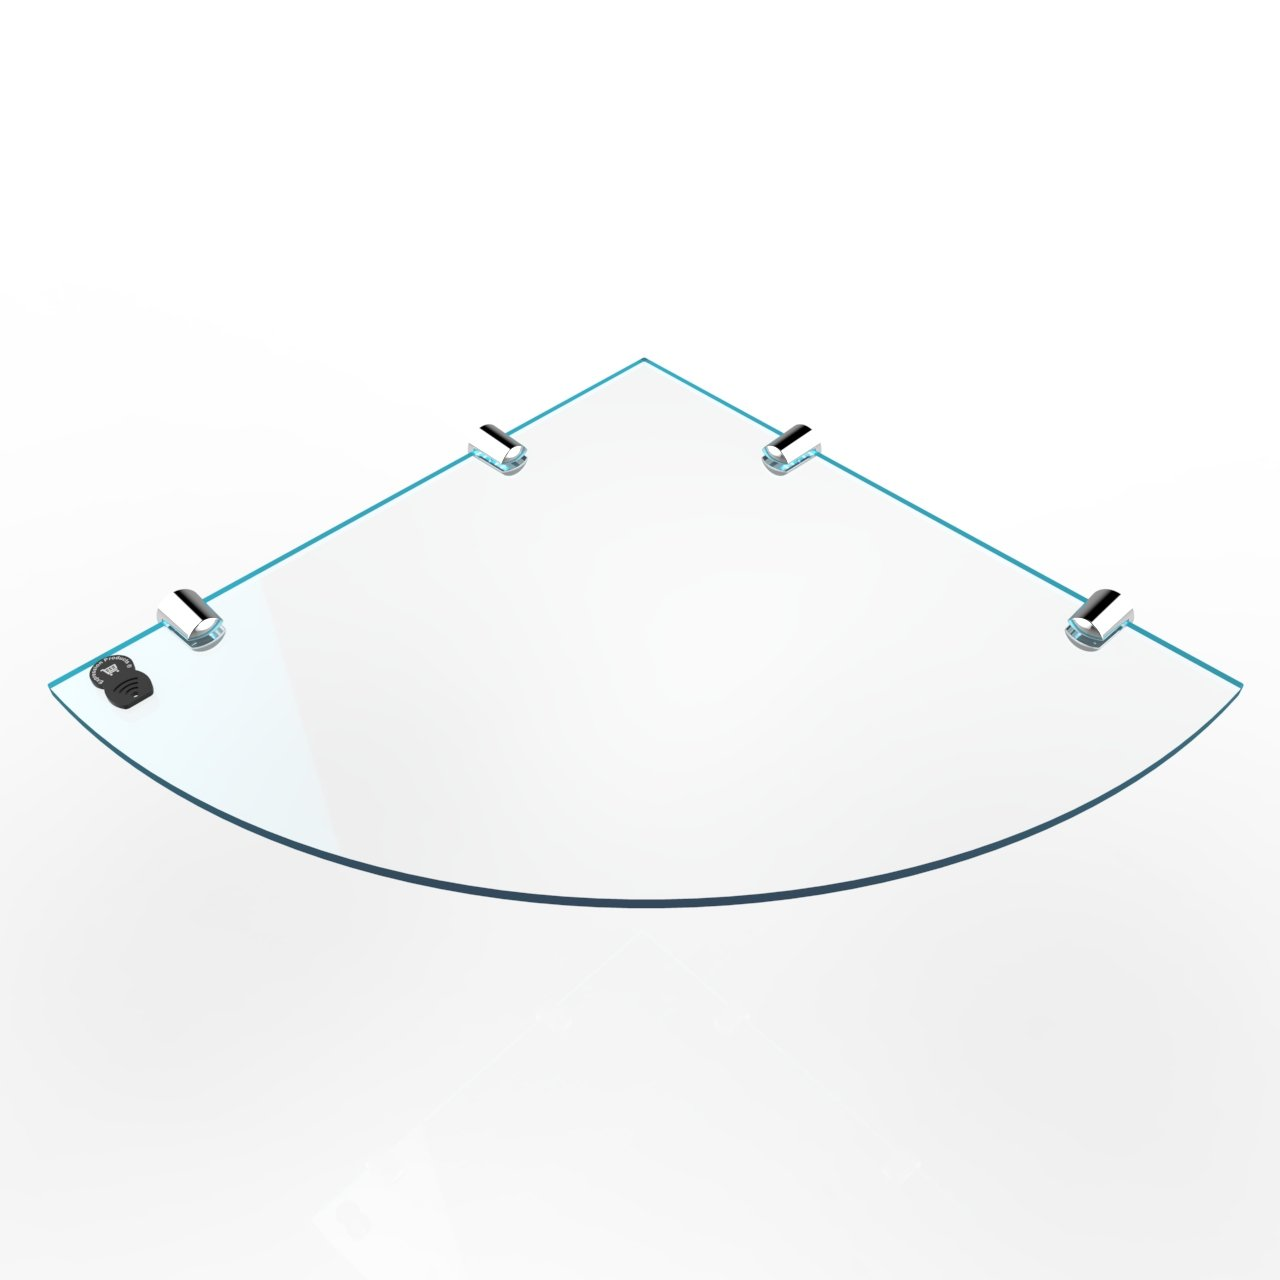 150mm Glass Effect by Expression Products Small Acrylic Corner Bathroom Shelf approx 6 Genuine item as shown only available from Expression Products